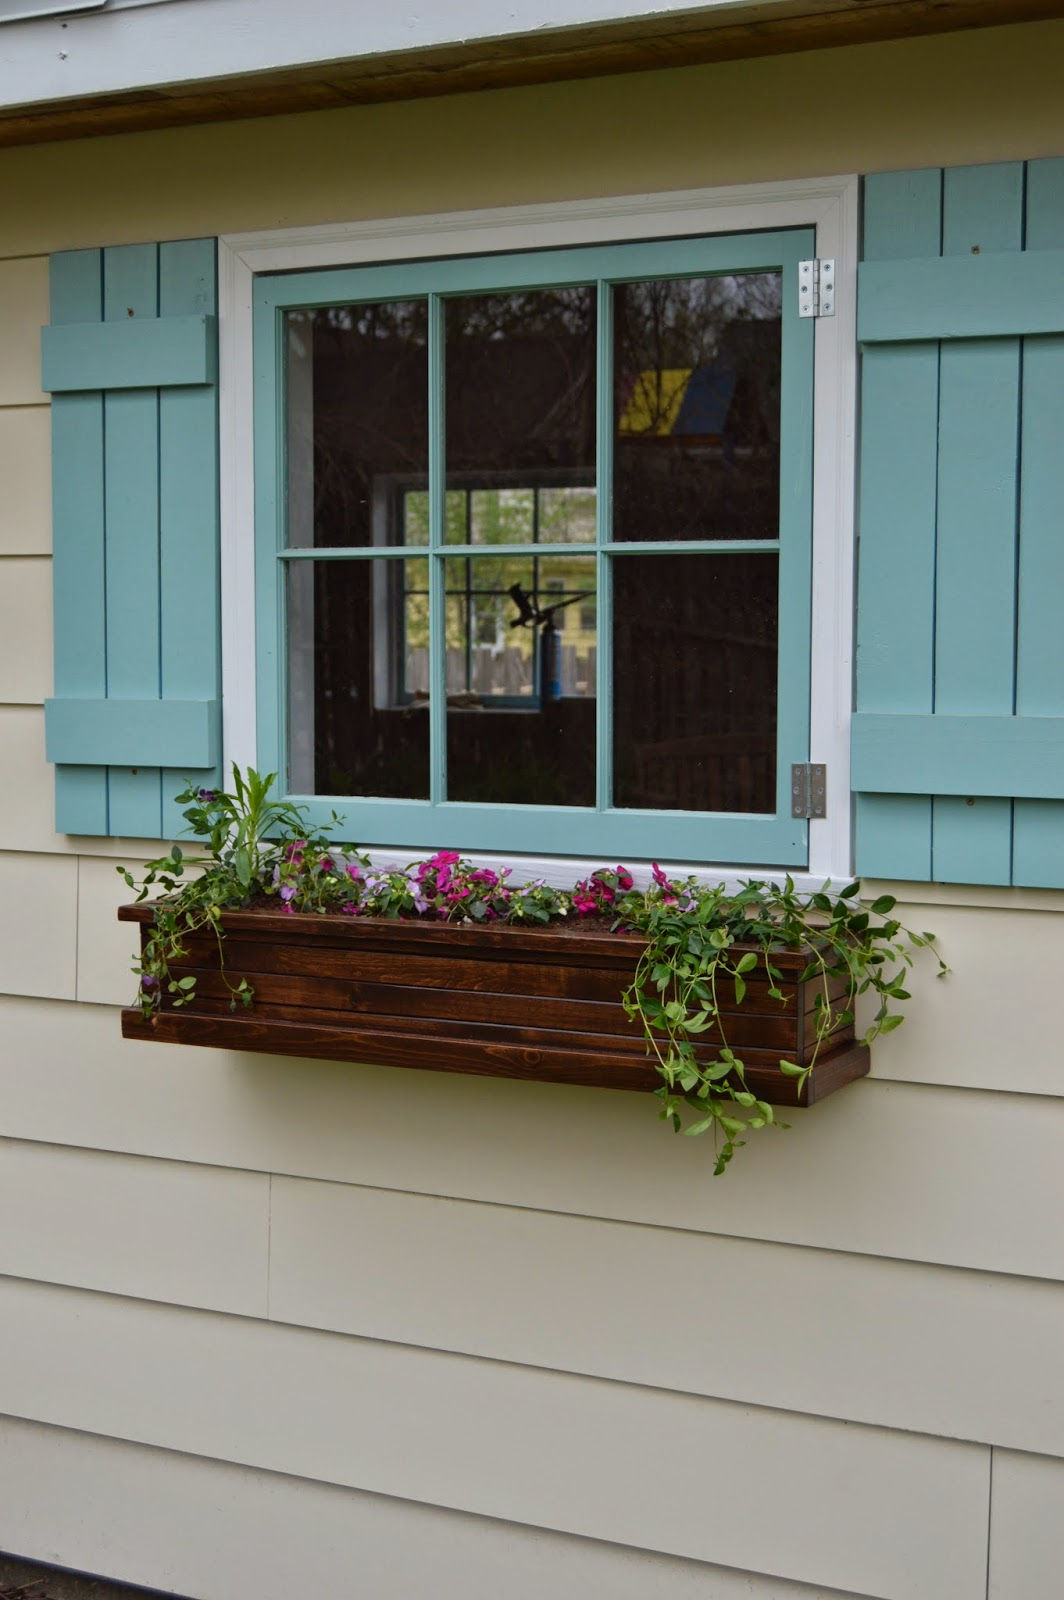 Get Ready for Spring With Window Boxes